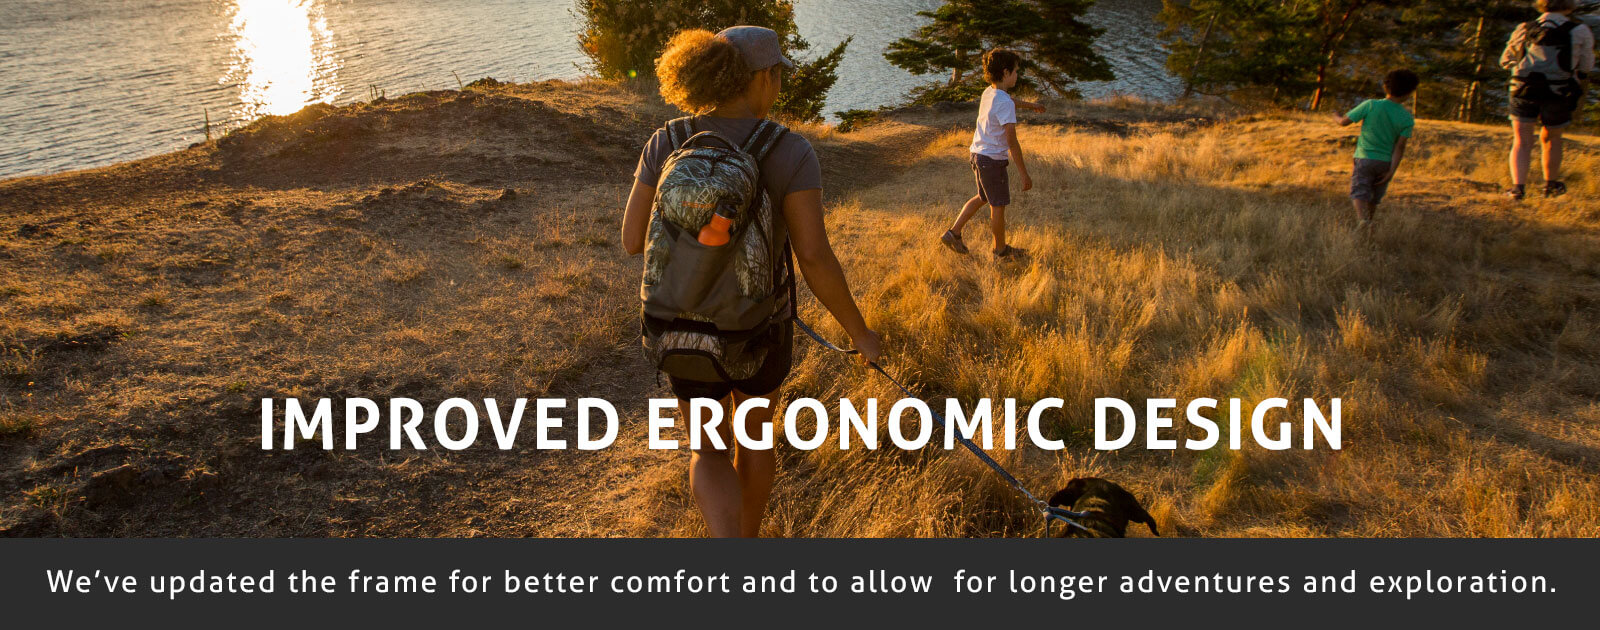 Hiking with Kids Ergonomic Design Bacpack